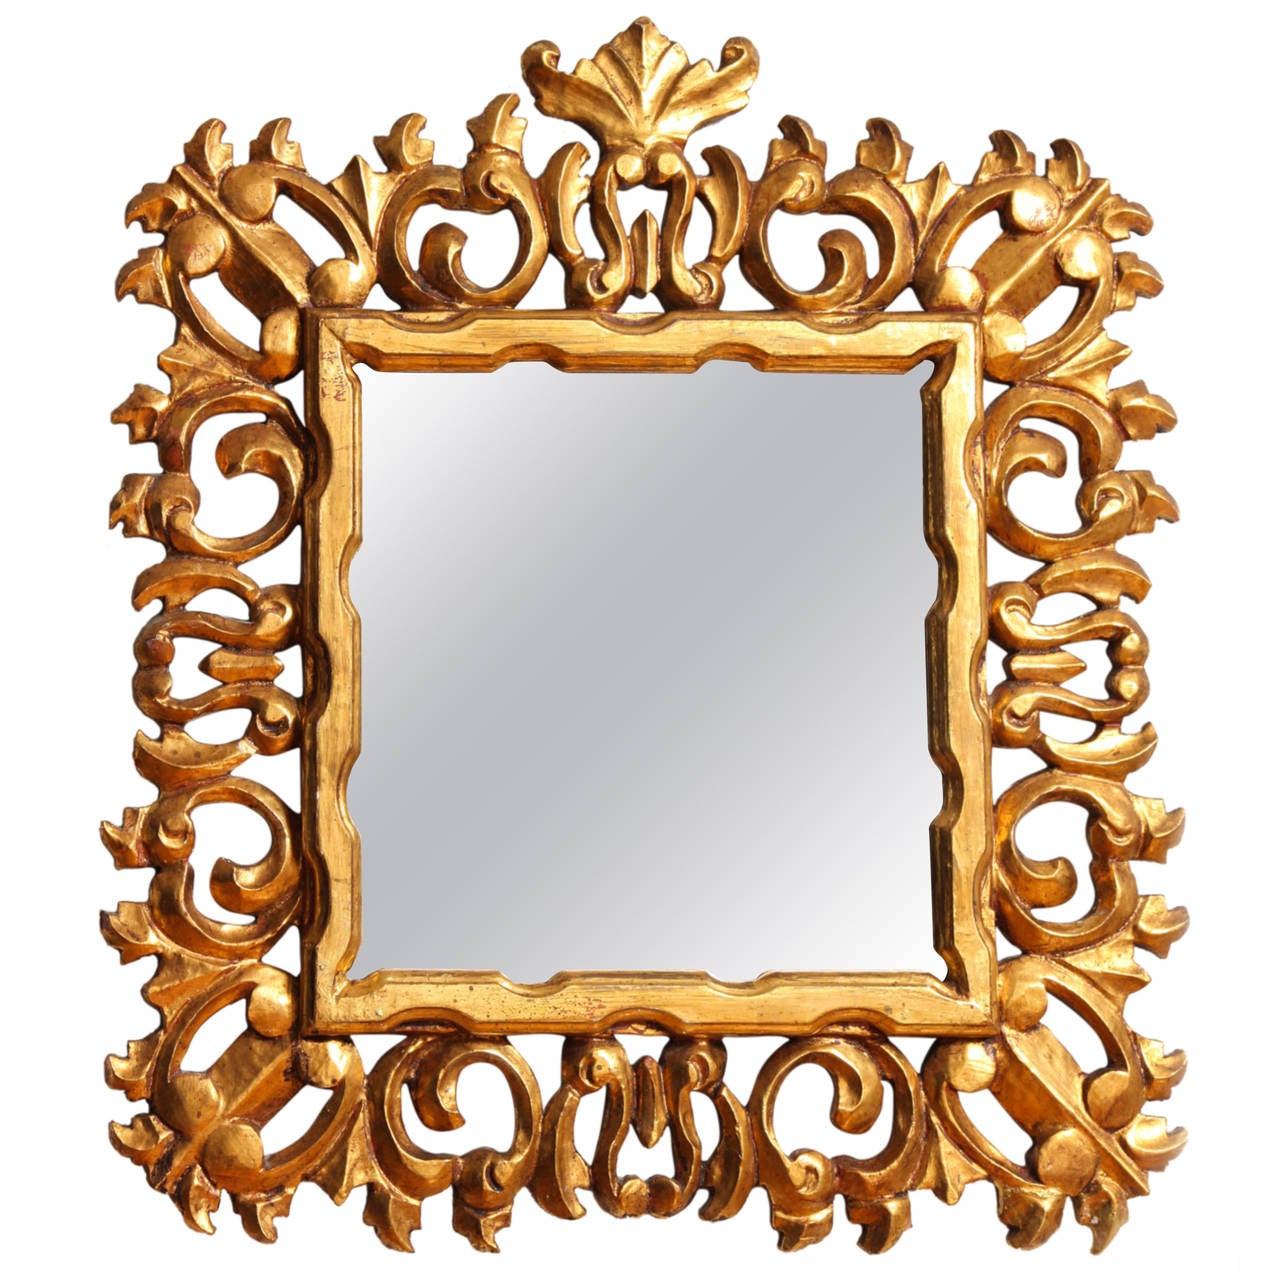 Carved and gilded italian baroque style mirror frame for sale at carved and gilded italian baroque style mirror frame for sale jeuxipadfo Images